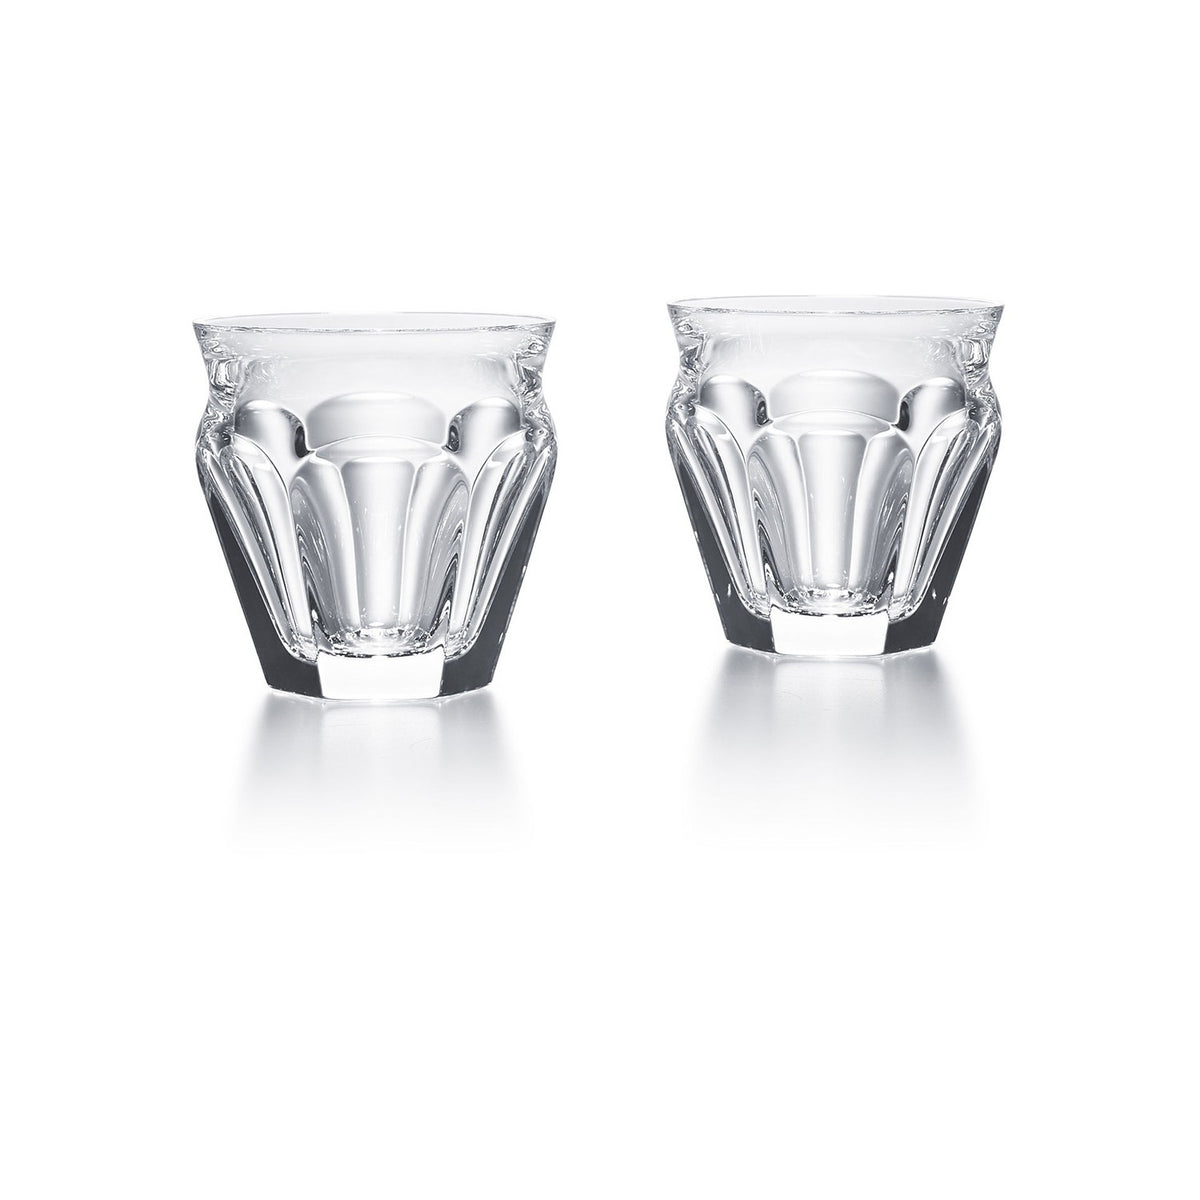 Harcourt Talleyrand Tumbler XS, Set of 2